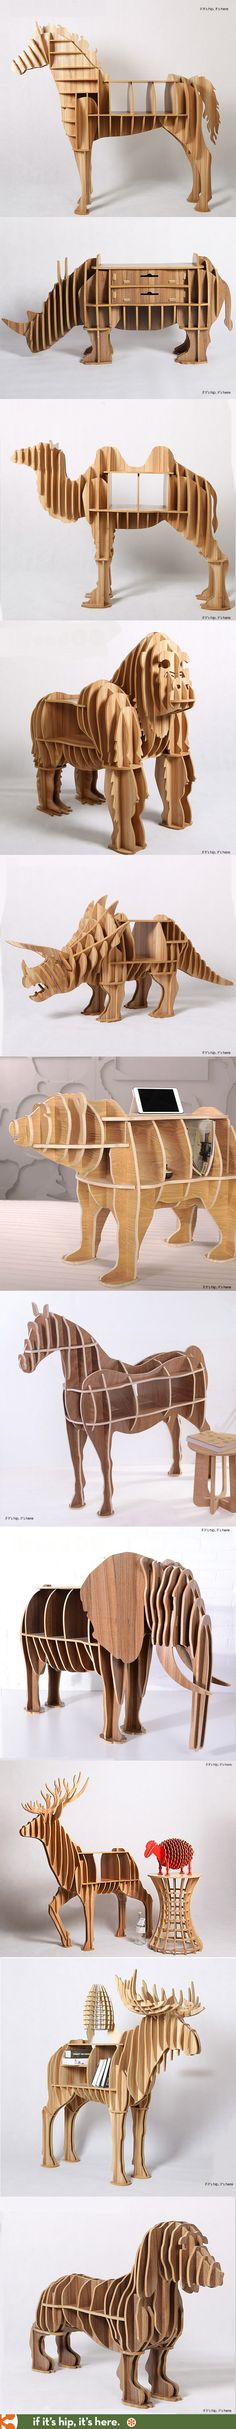 The 20 most awesome animal bookcases, desks and end tables you can buy. They ship flat-packed and are easily assembled without nails or glue. More at www. Woodworking Plans, Woodworking Projects, Learn Woodworking, Wood Furniture, Furniture Design, Cnc Projects, Wood Toys, Wood Design, Yard Art